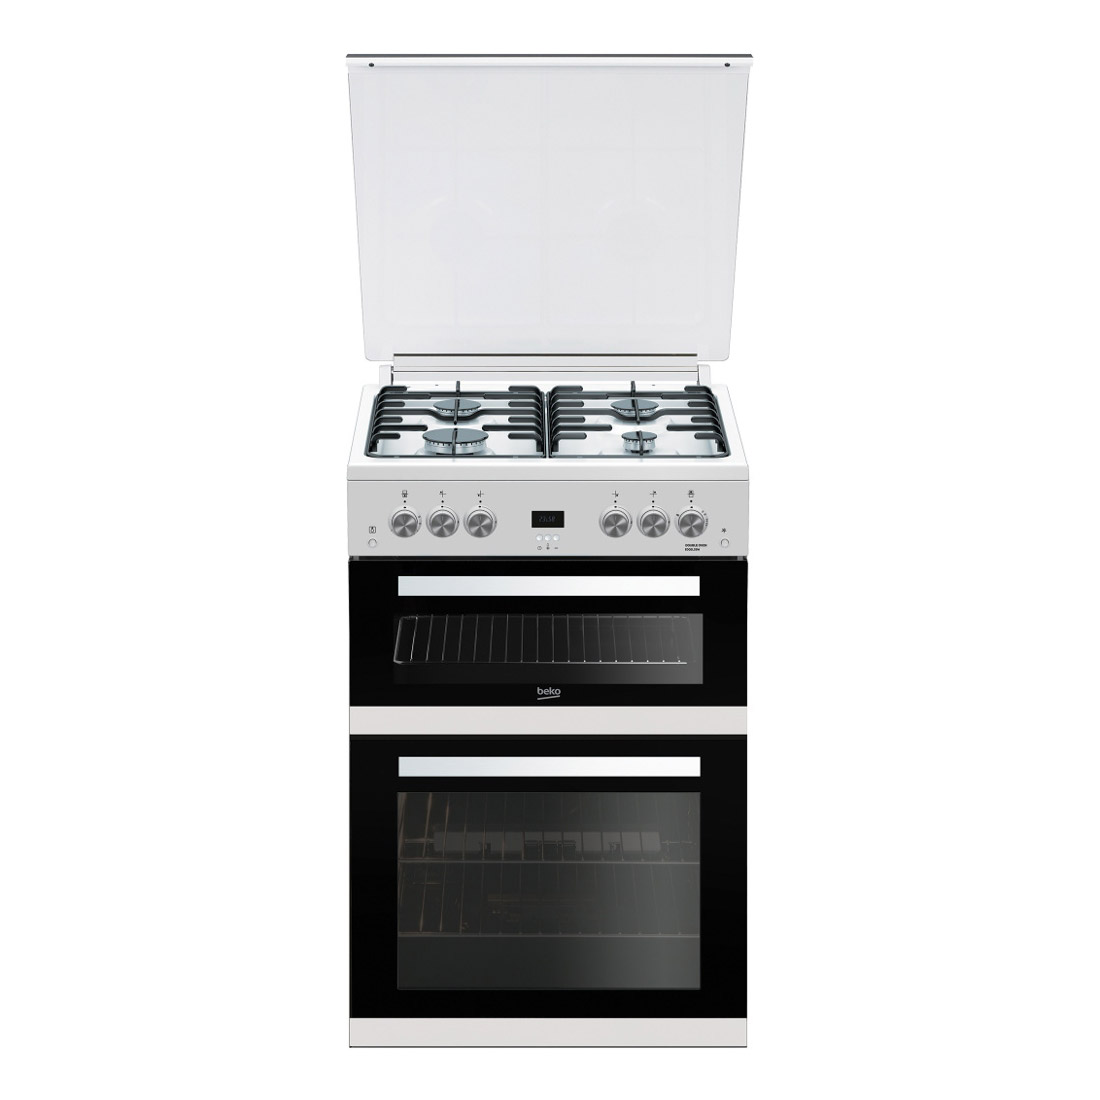 Oven Gas Stove Beko Edg6l33w 60cm Double Oven Gas Cooker In White Glass Lid Fsd